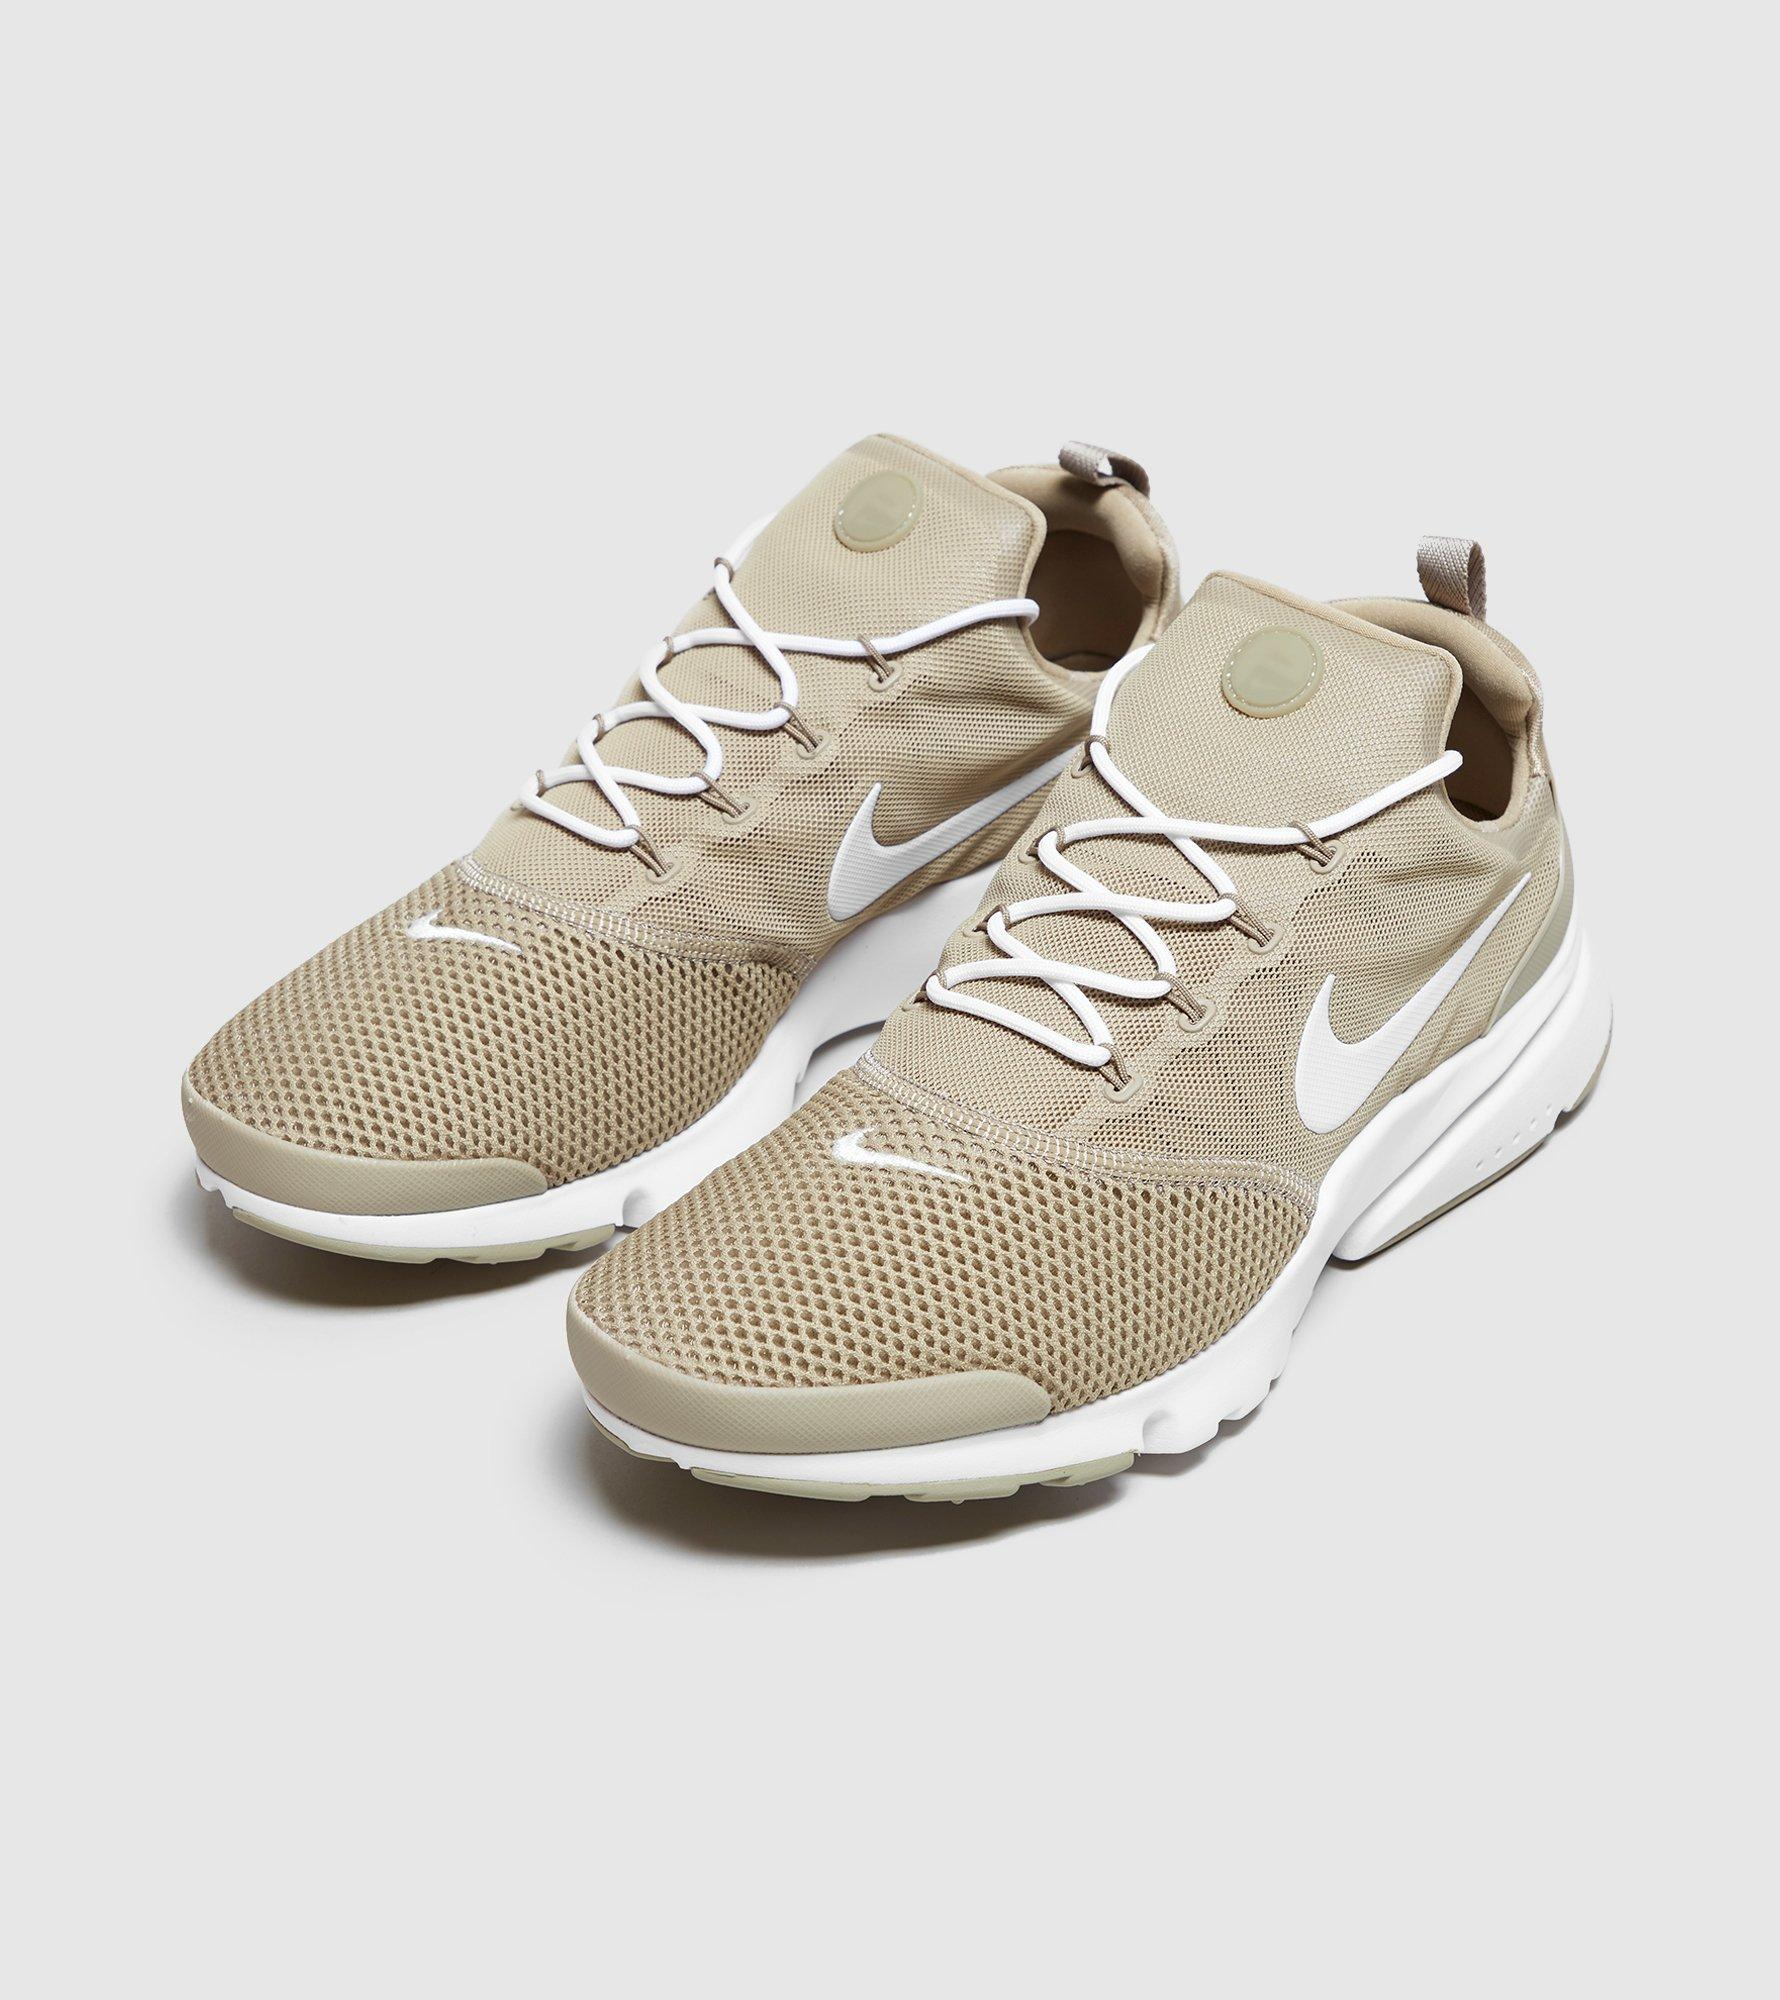 low priced 88897 d96a0 uk nike air presto coral necklace 1872d 8c87b